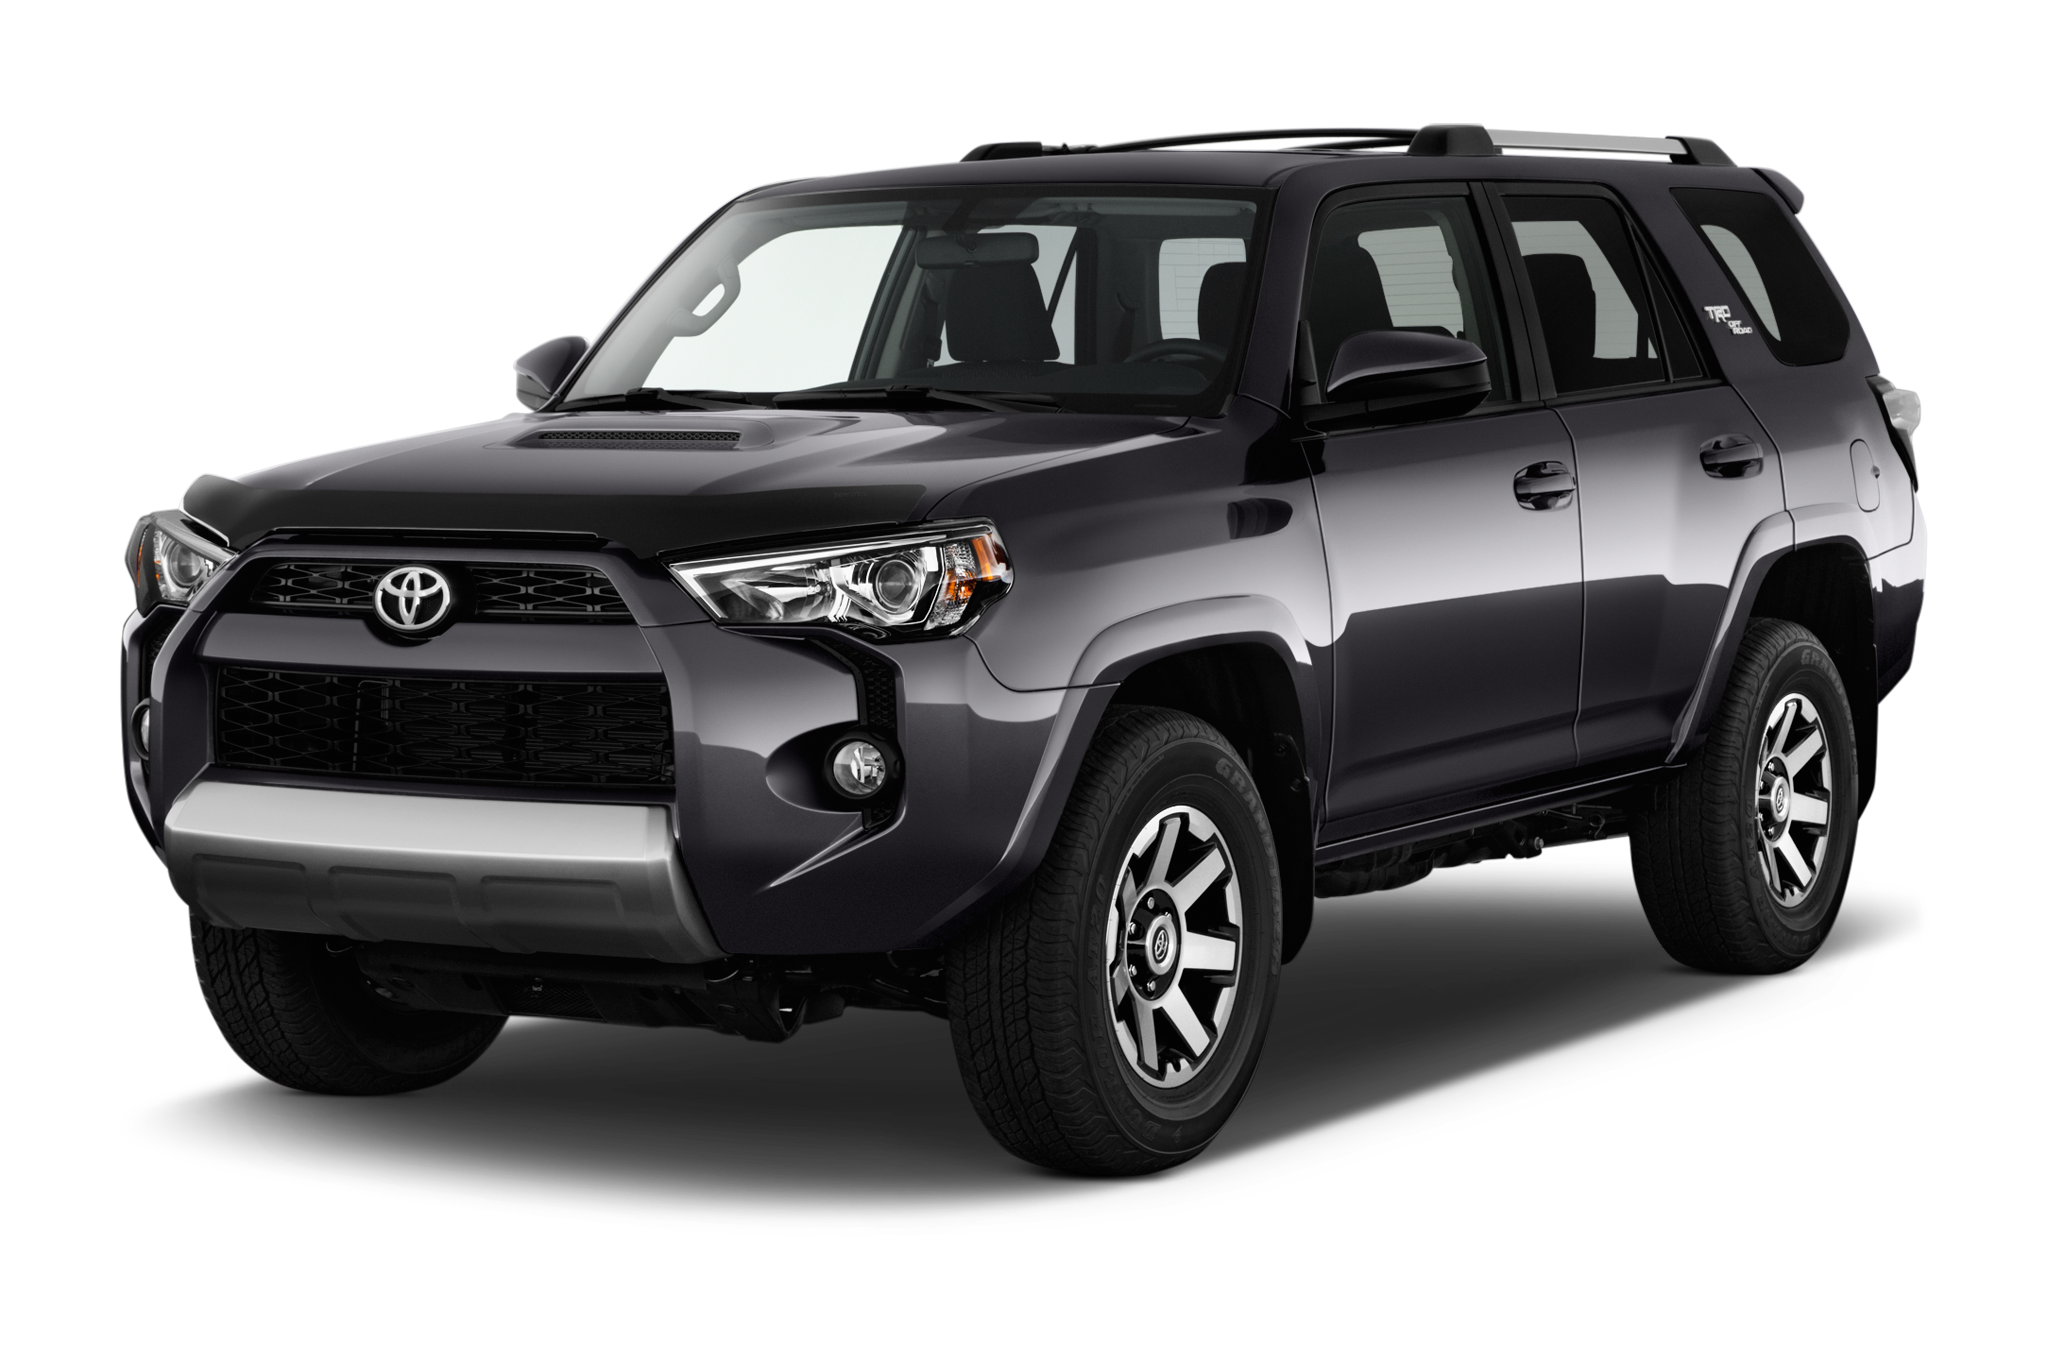 2017 Toyota 4runner Reviews And Rating Motortrend